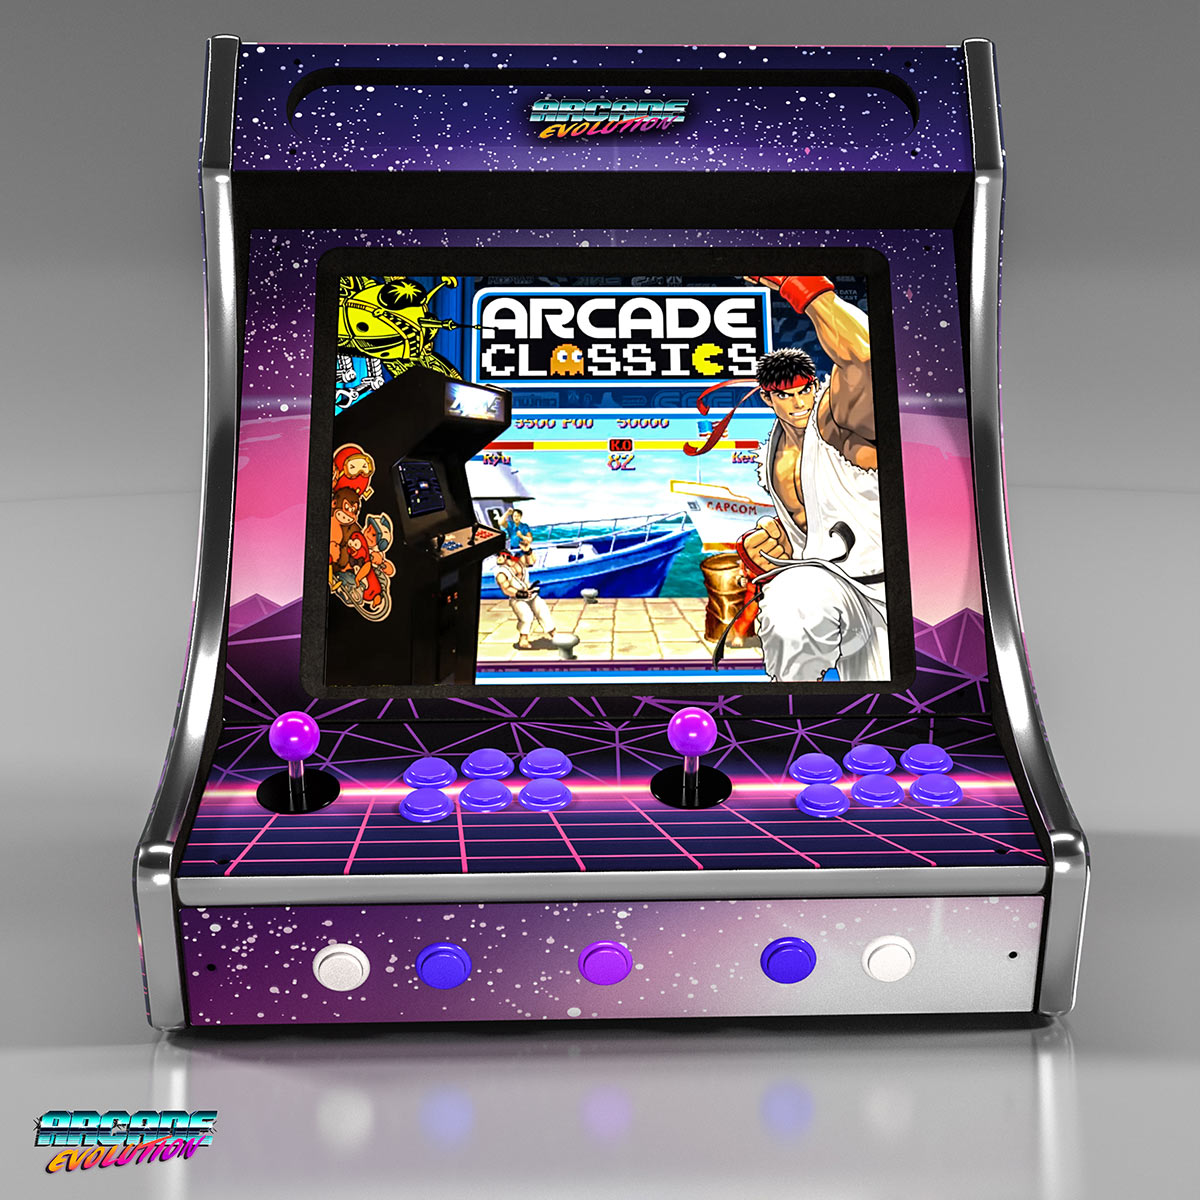 Buy Arcade Machines Fully Configure With 1000's Of Games ...